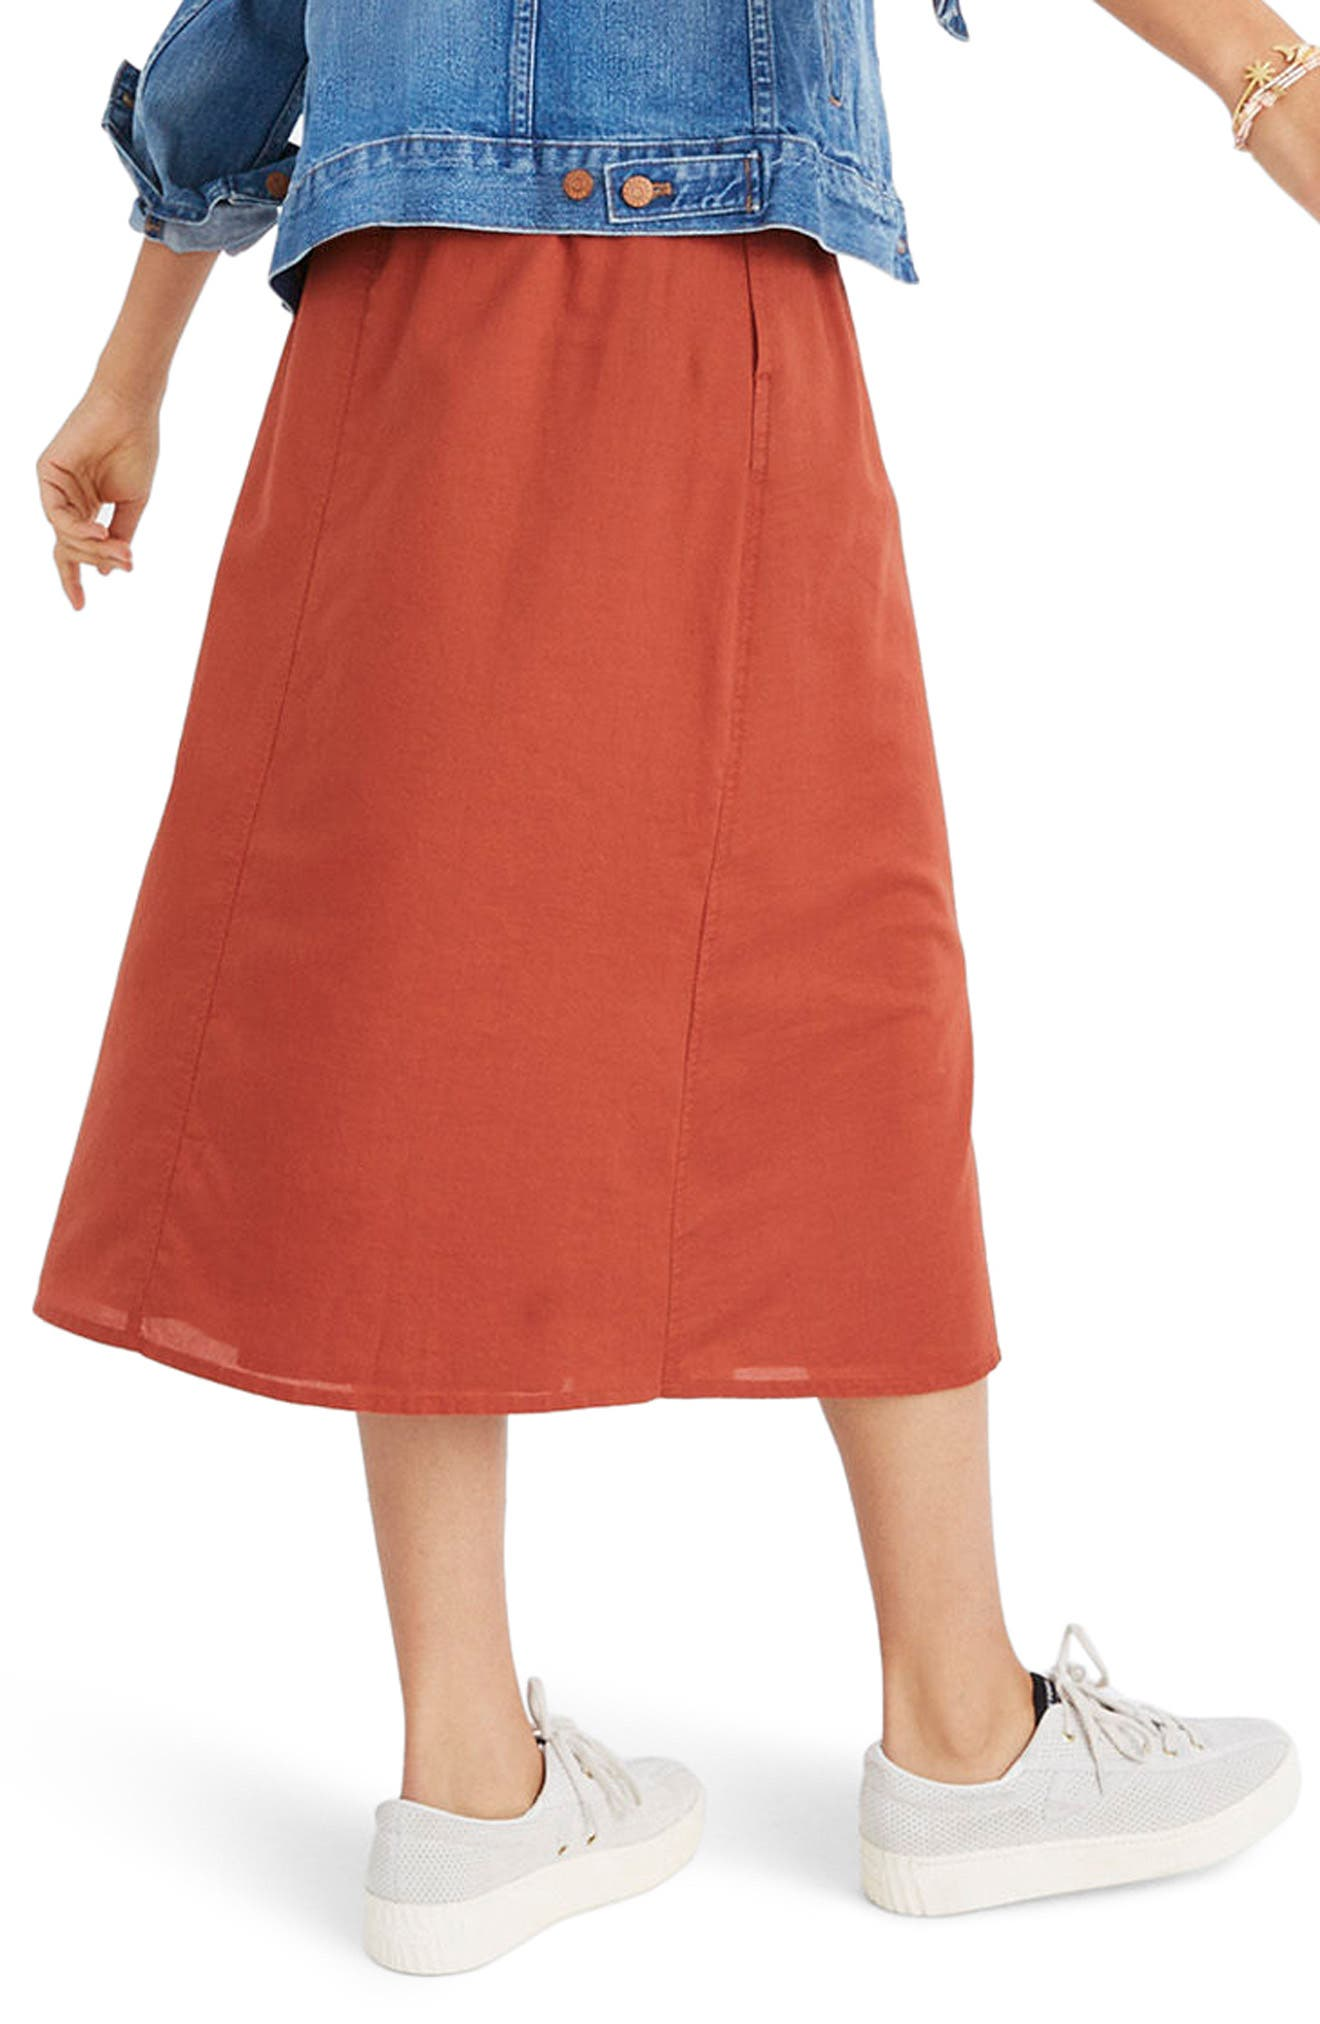 Palisade Button Front Midi Skirt,                             Alternate thumbnail 2, color,                             Rusty Torch